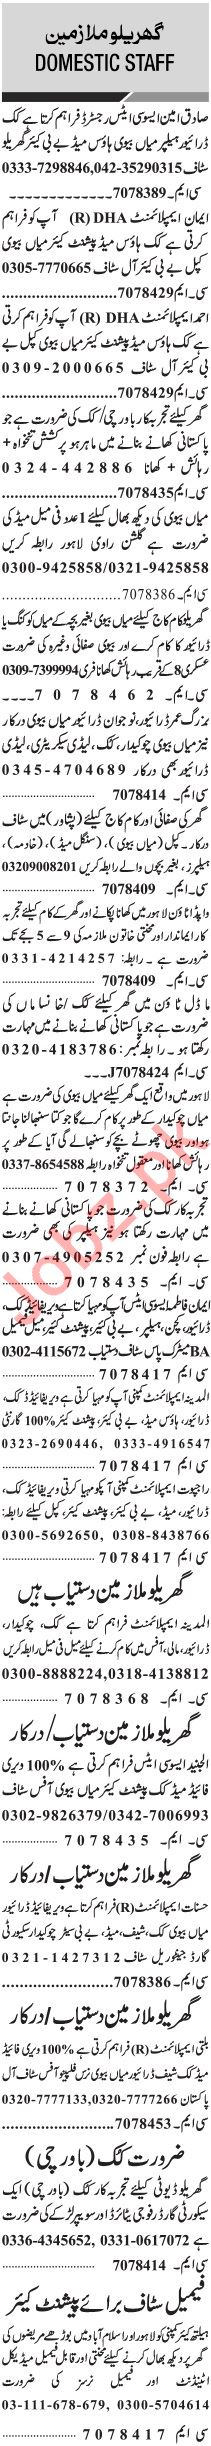 Jang Sunday Classified Ads 19 Jan 2020 for Domestic Staff